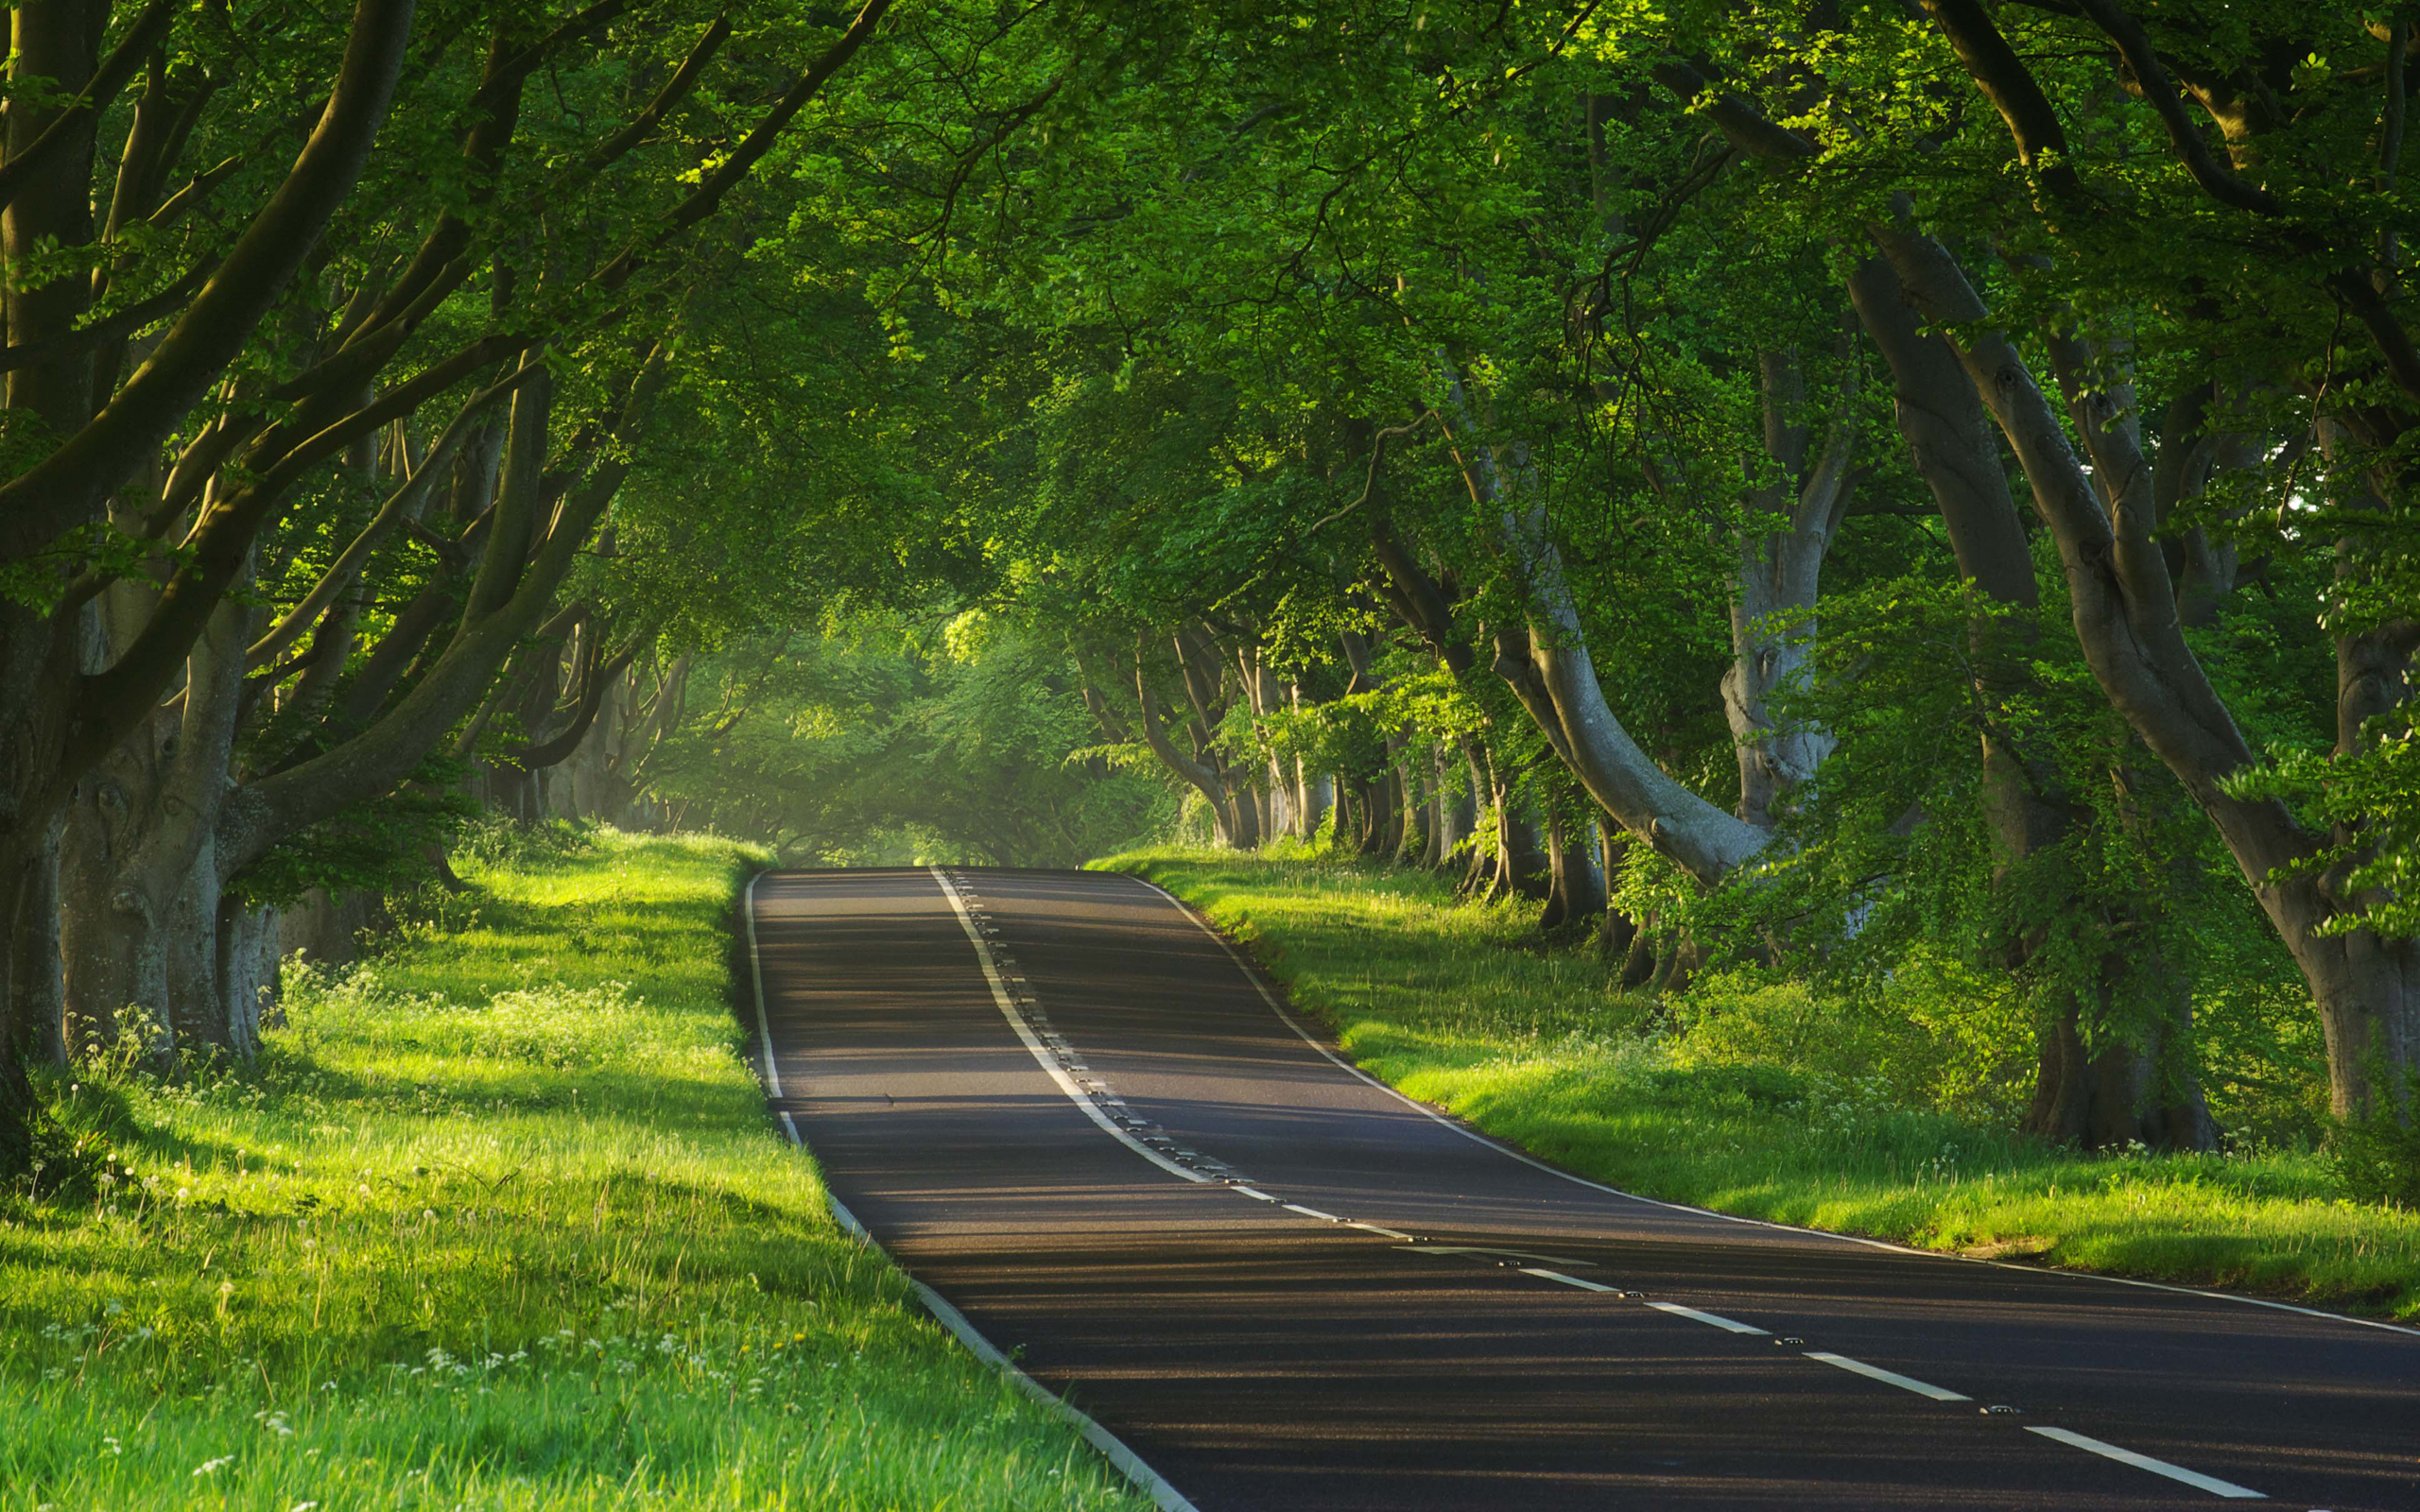 Road wallpapers best wallpapers for Wallpaper for